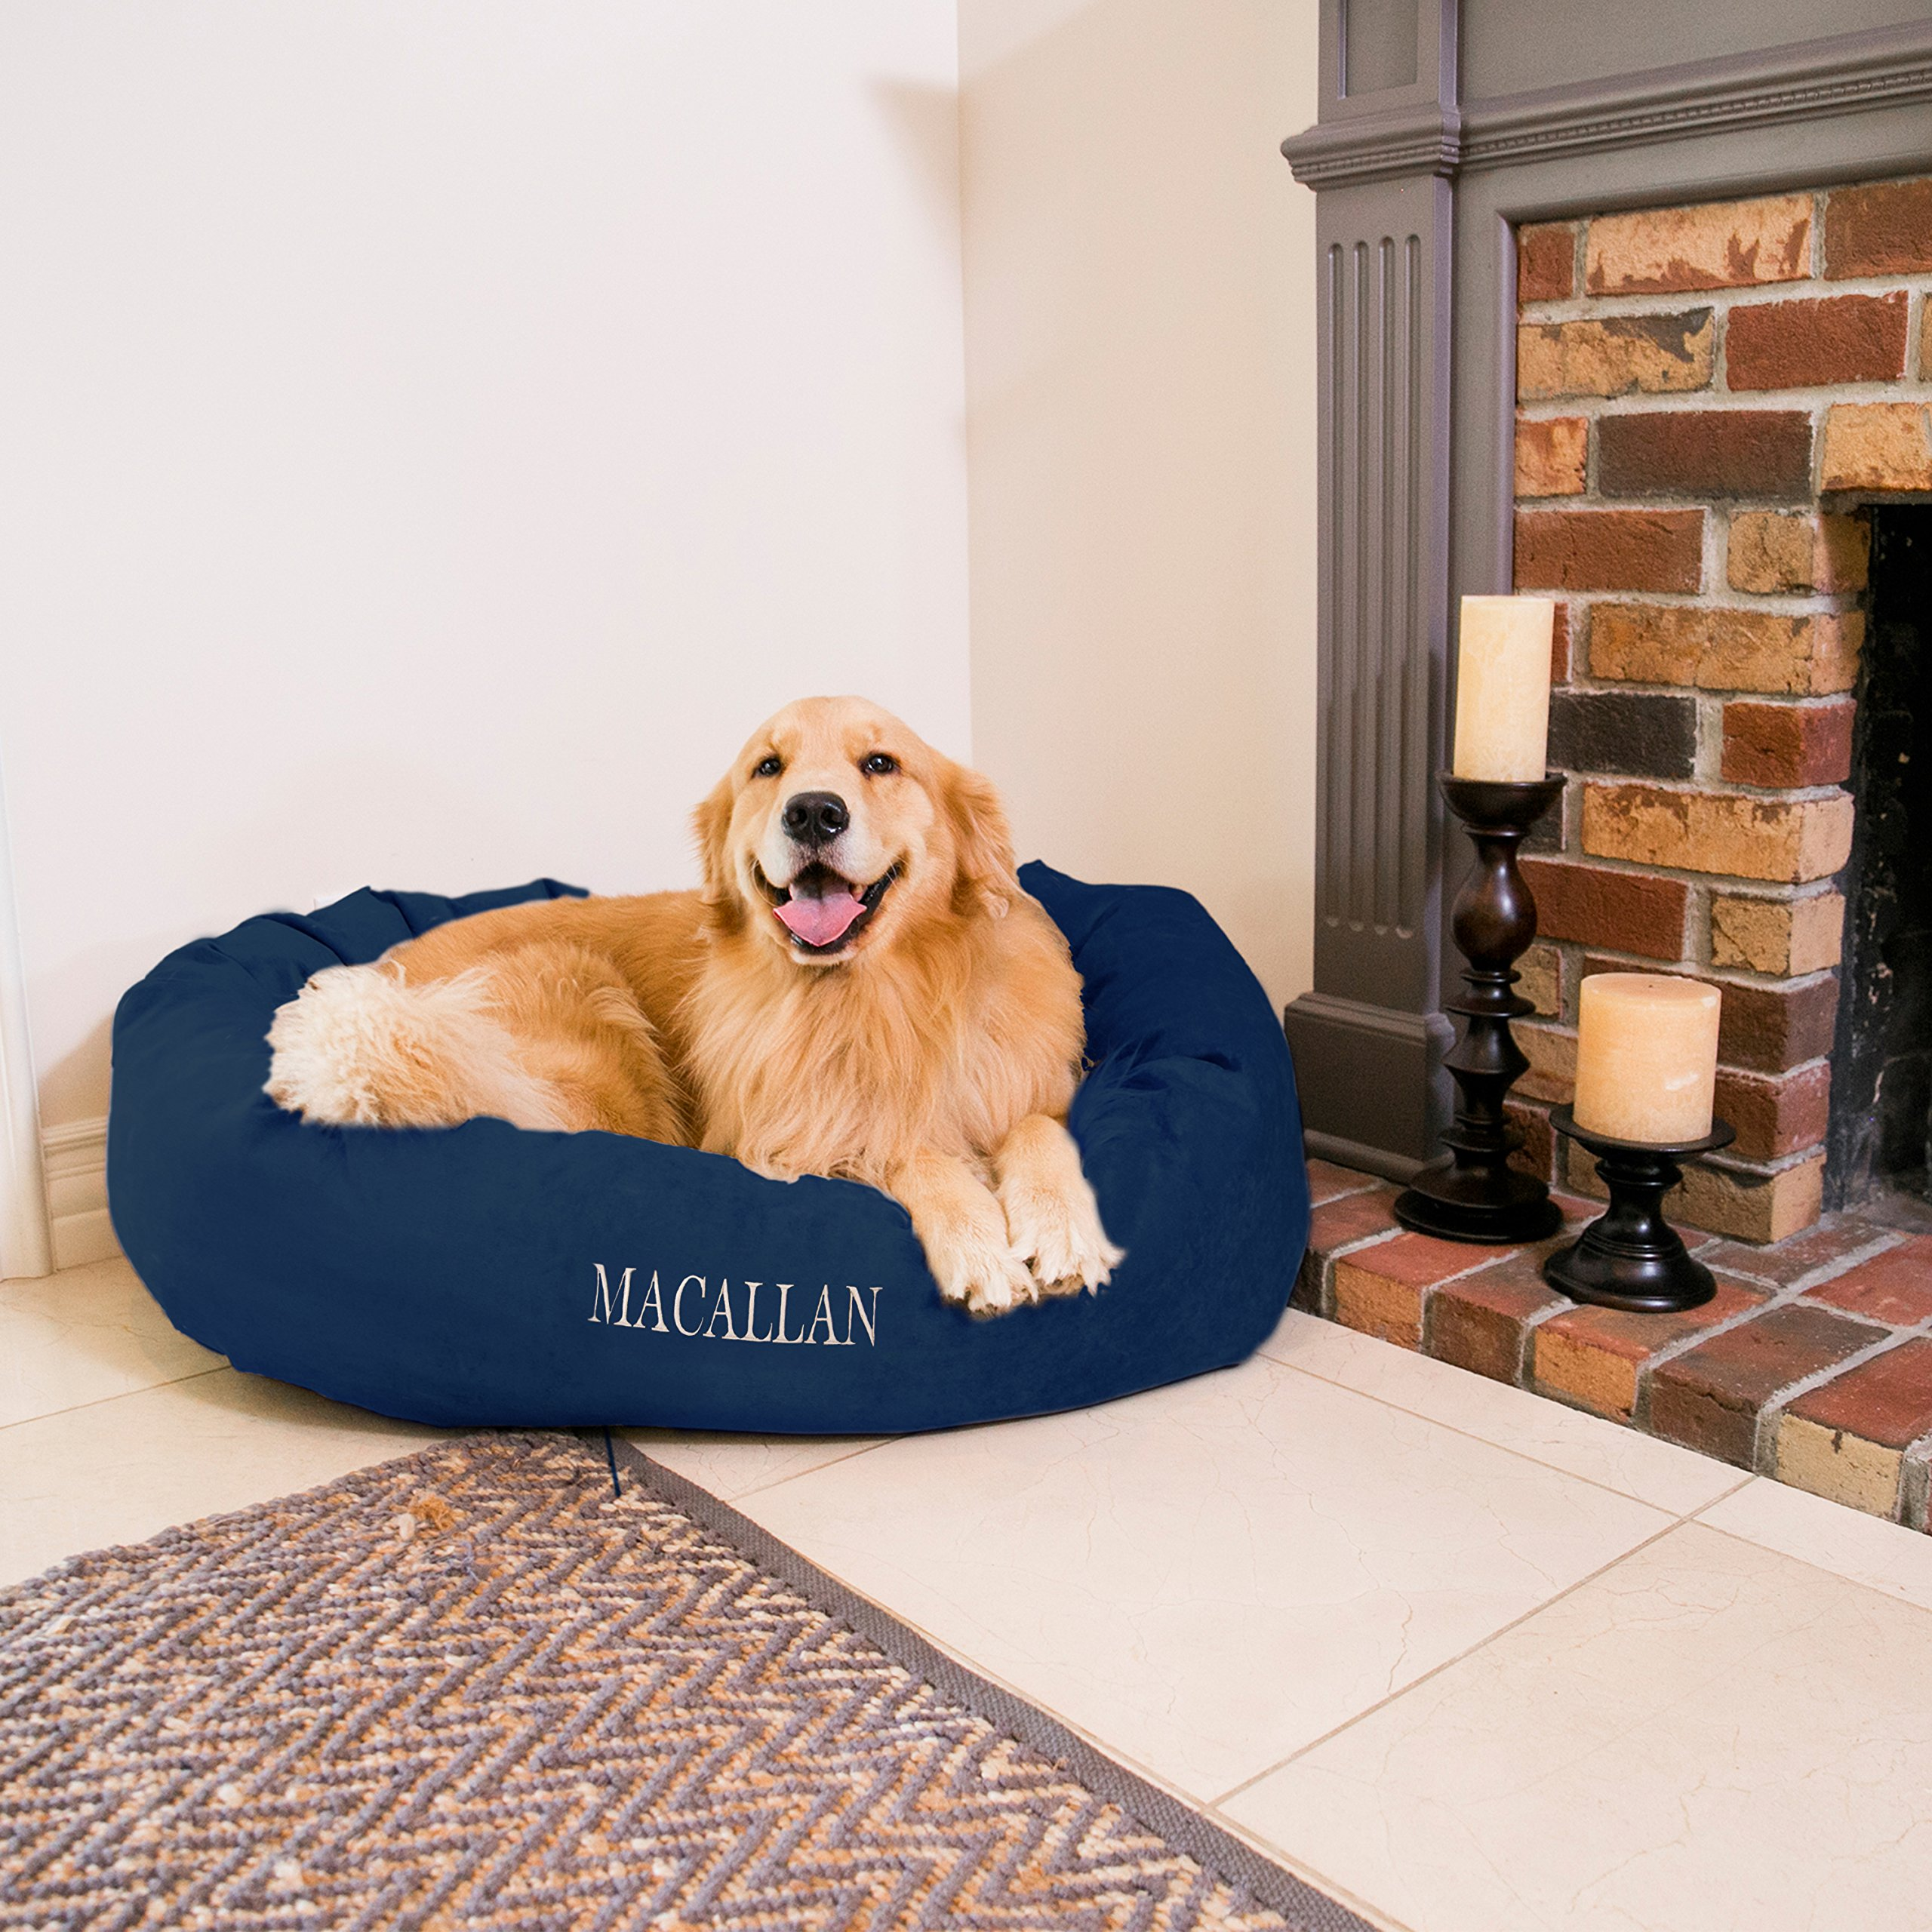 Majestic Pet Personalized Bagel Dog Bed - Machine Washable - Soft Comfortable Sleeping Mat - Durable Supportive Cushion Custom Embroidered - Available Replacement Covers - Large Navy Blue by Majestic Pet